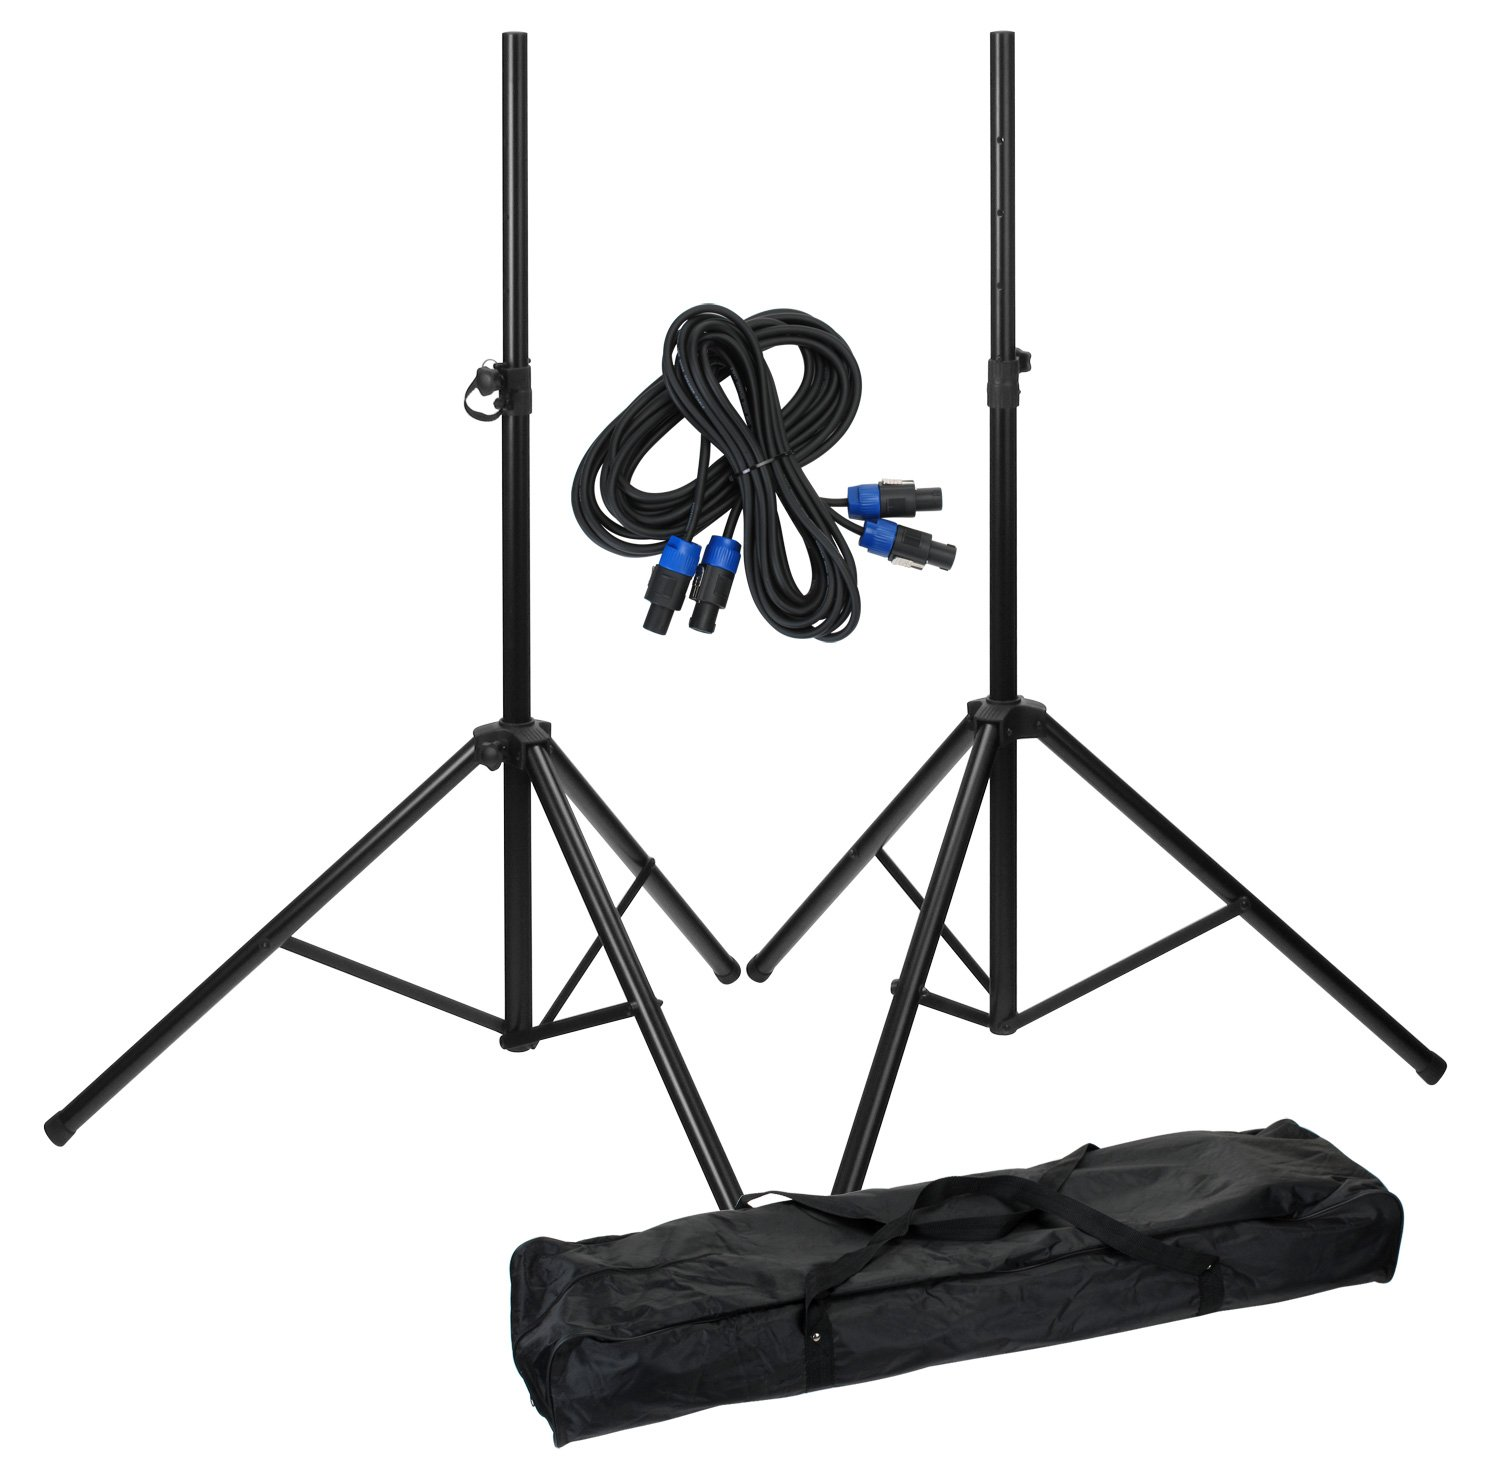 Pronomic 27029 - Set de dos soportes, funda transporte y cables 00027029